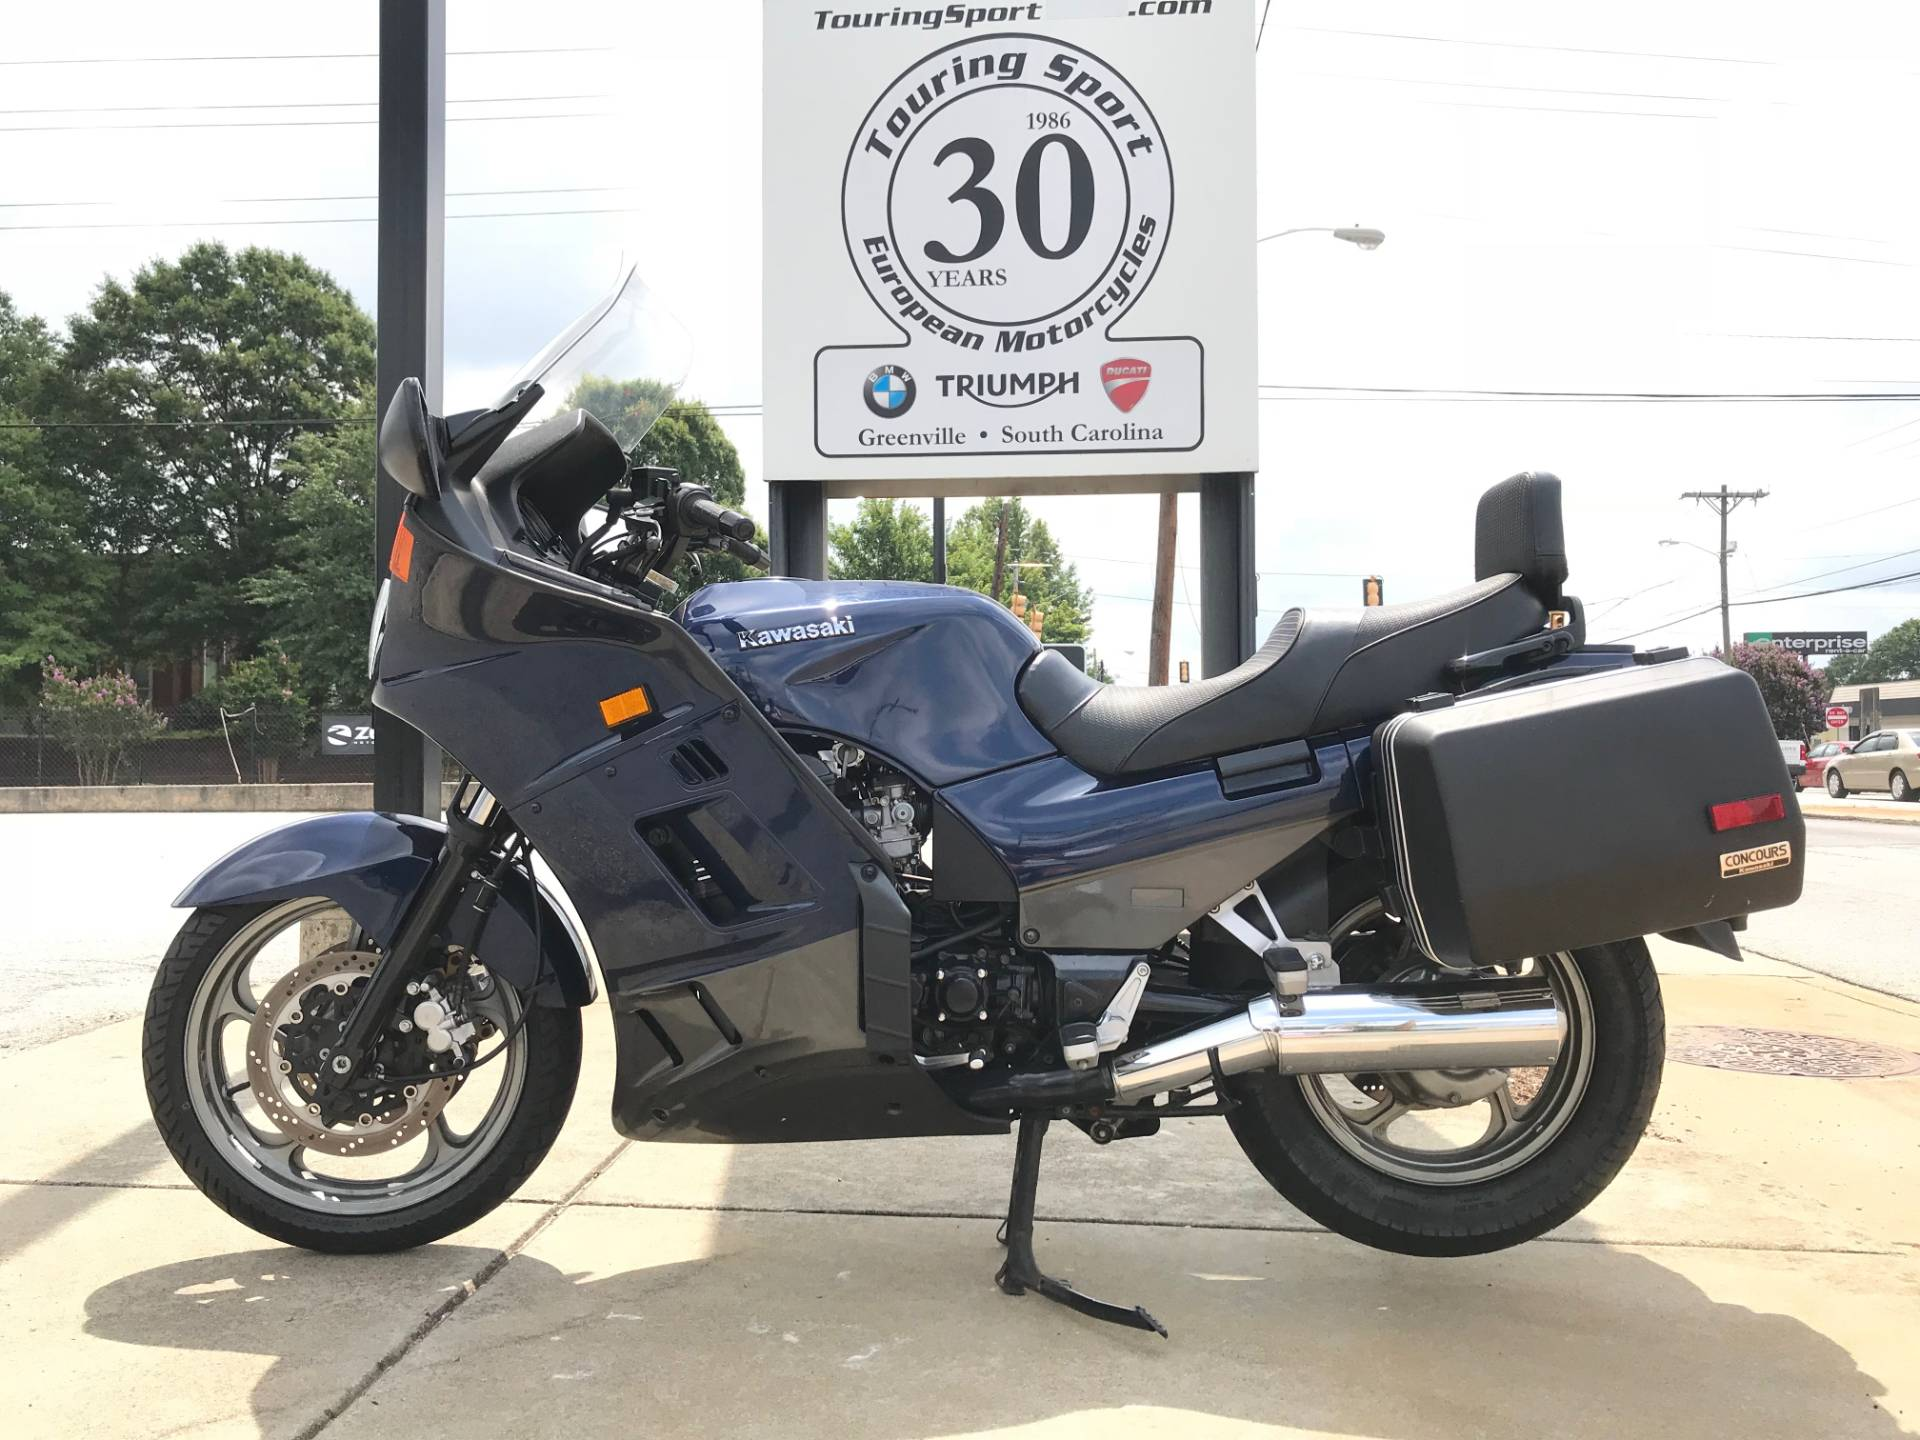 2006 Kawasaki Concours™ in Greenville, South Carolina